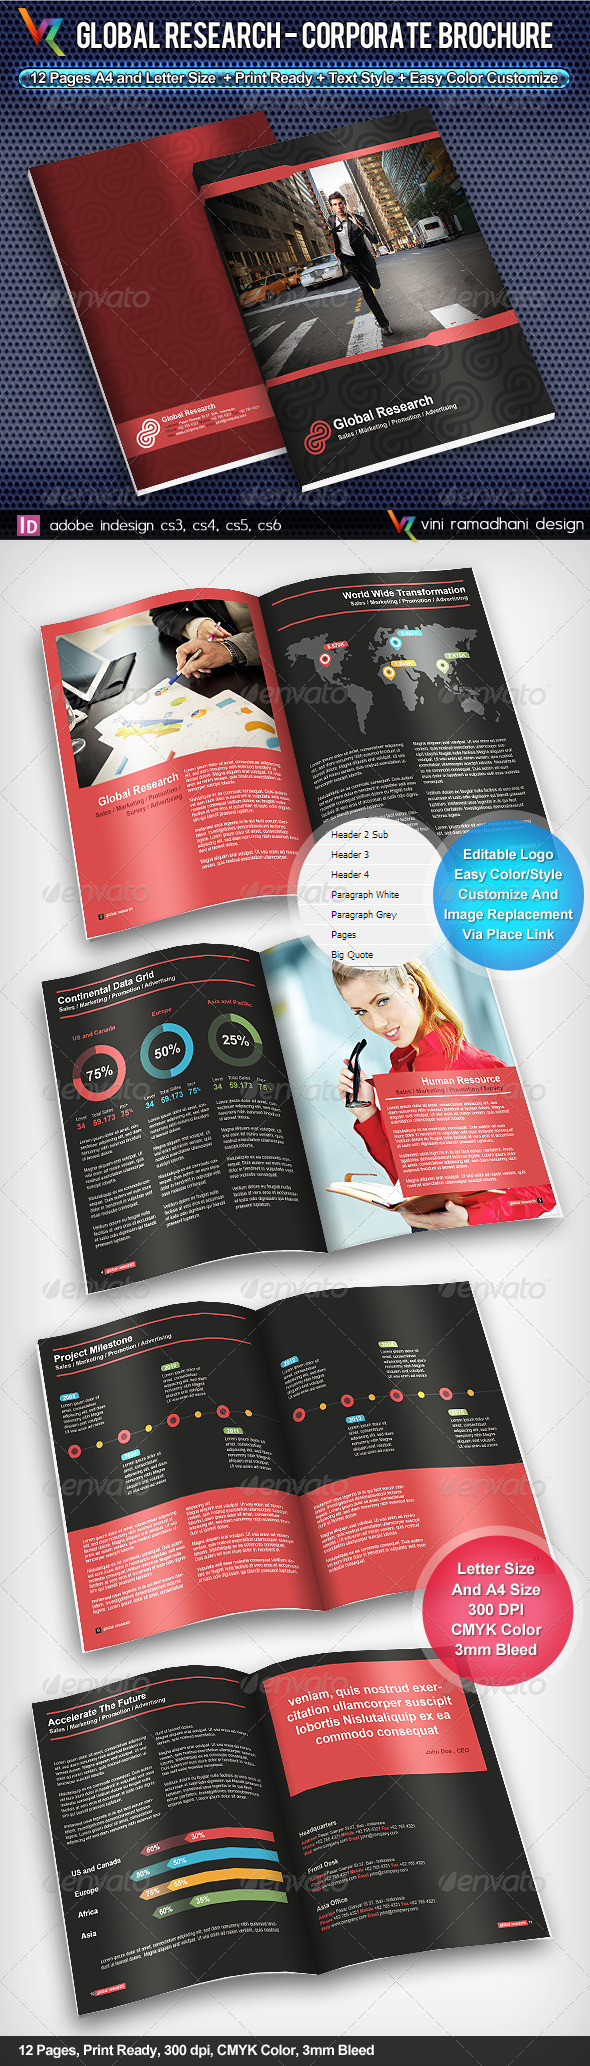 GraphicRiver Global Research Corporate Brochure 4077265